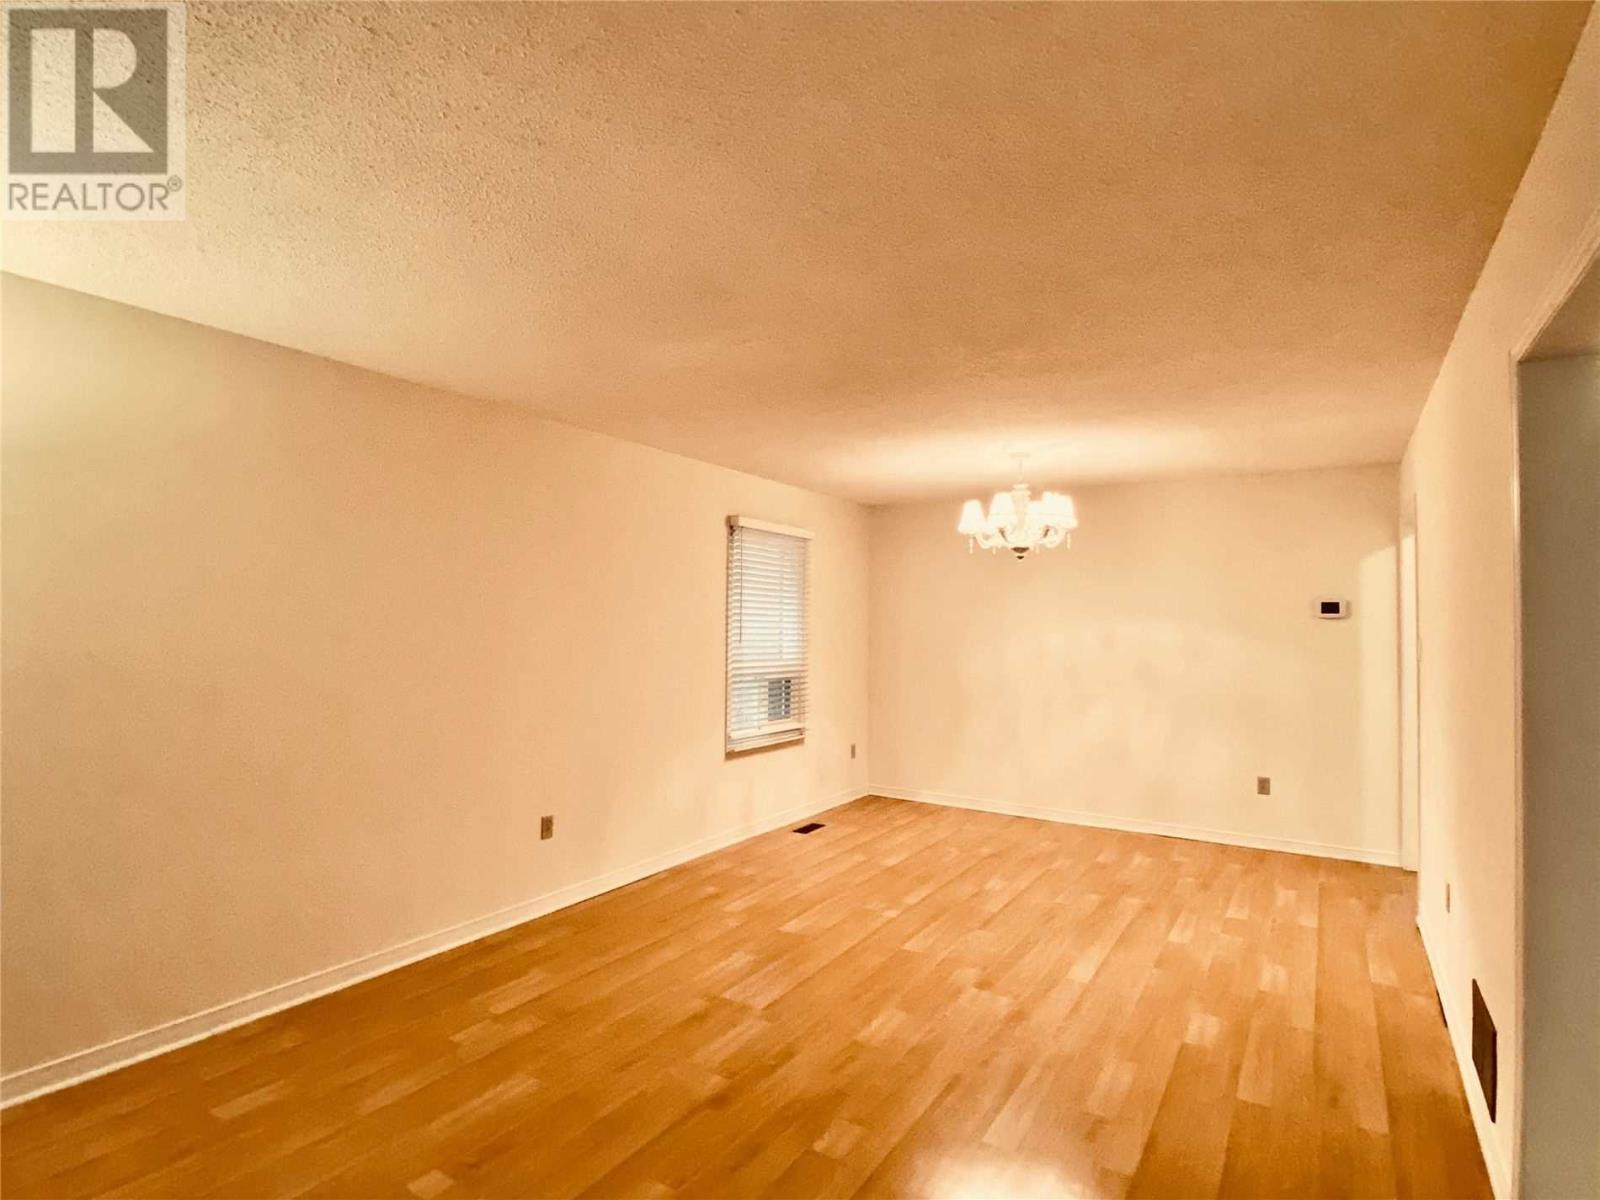 2547 Dinning Crt, Mississauga, Ontario  L5M 5E7 - Photo 3 - W4640786